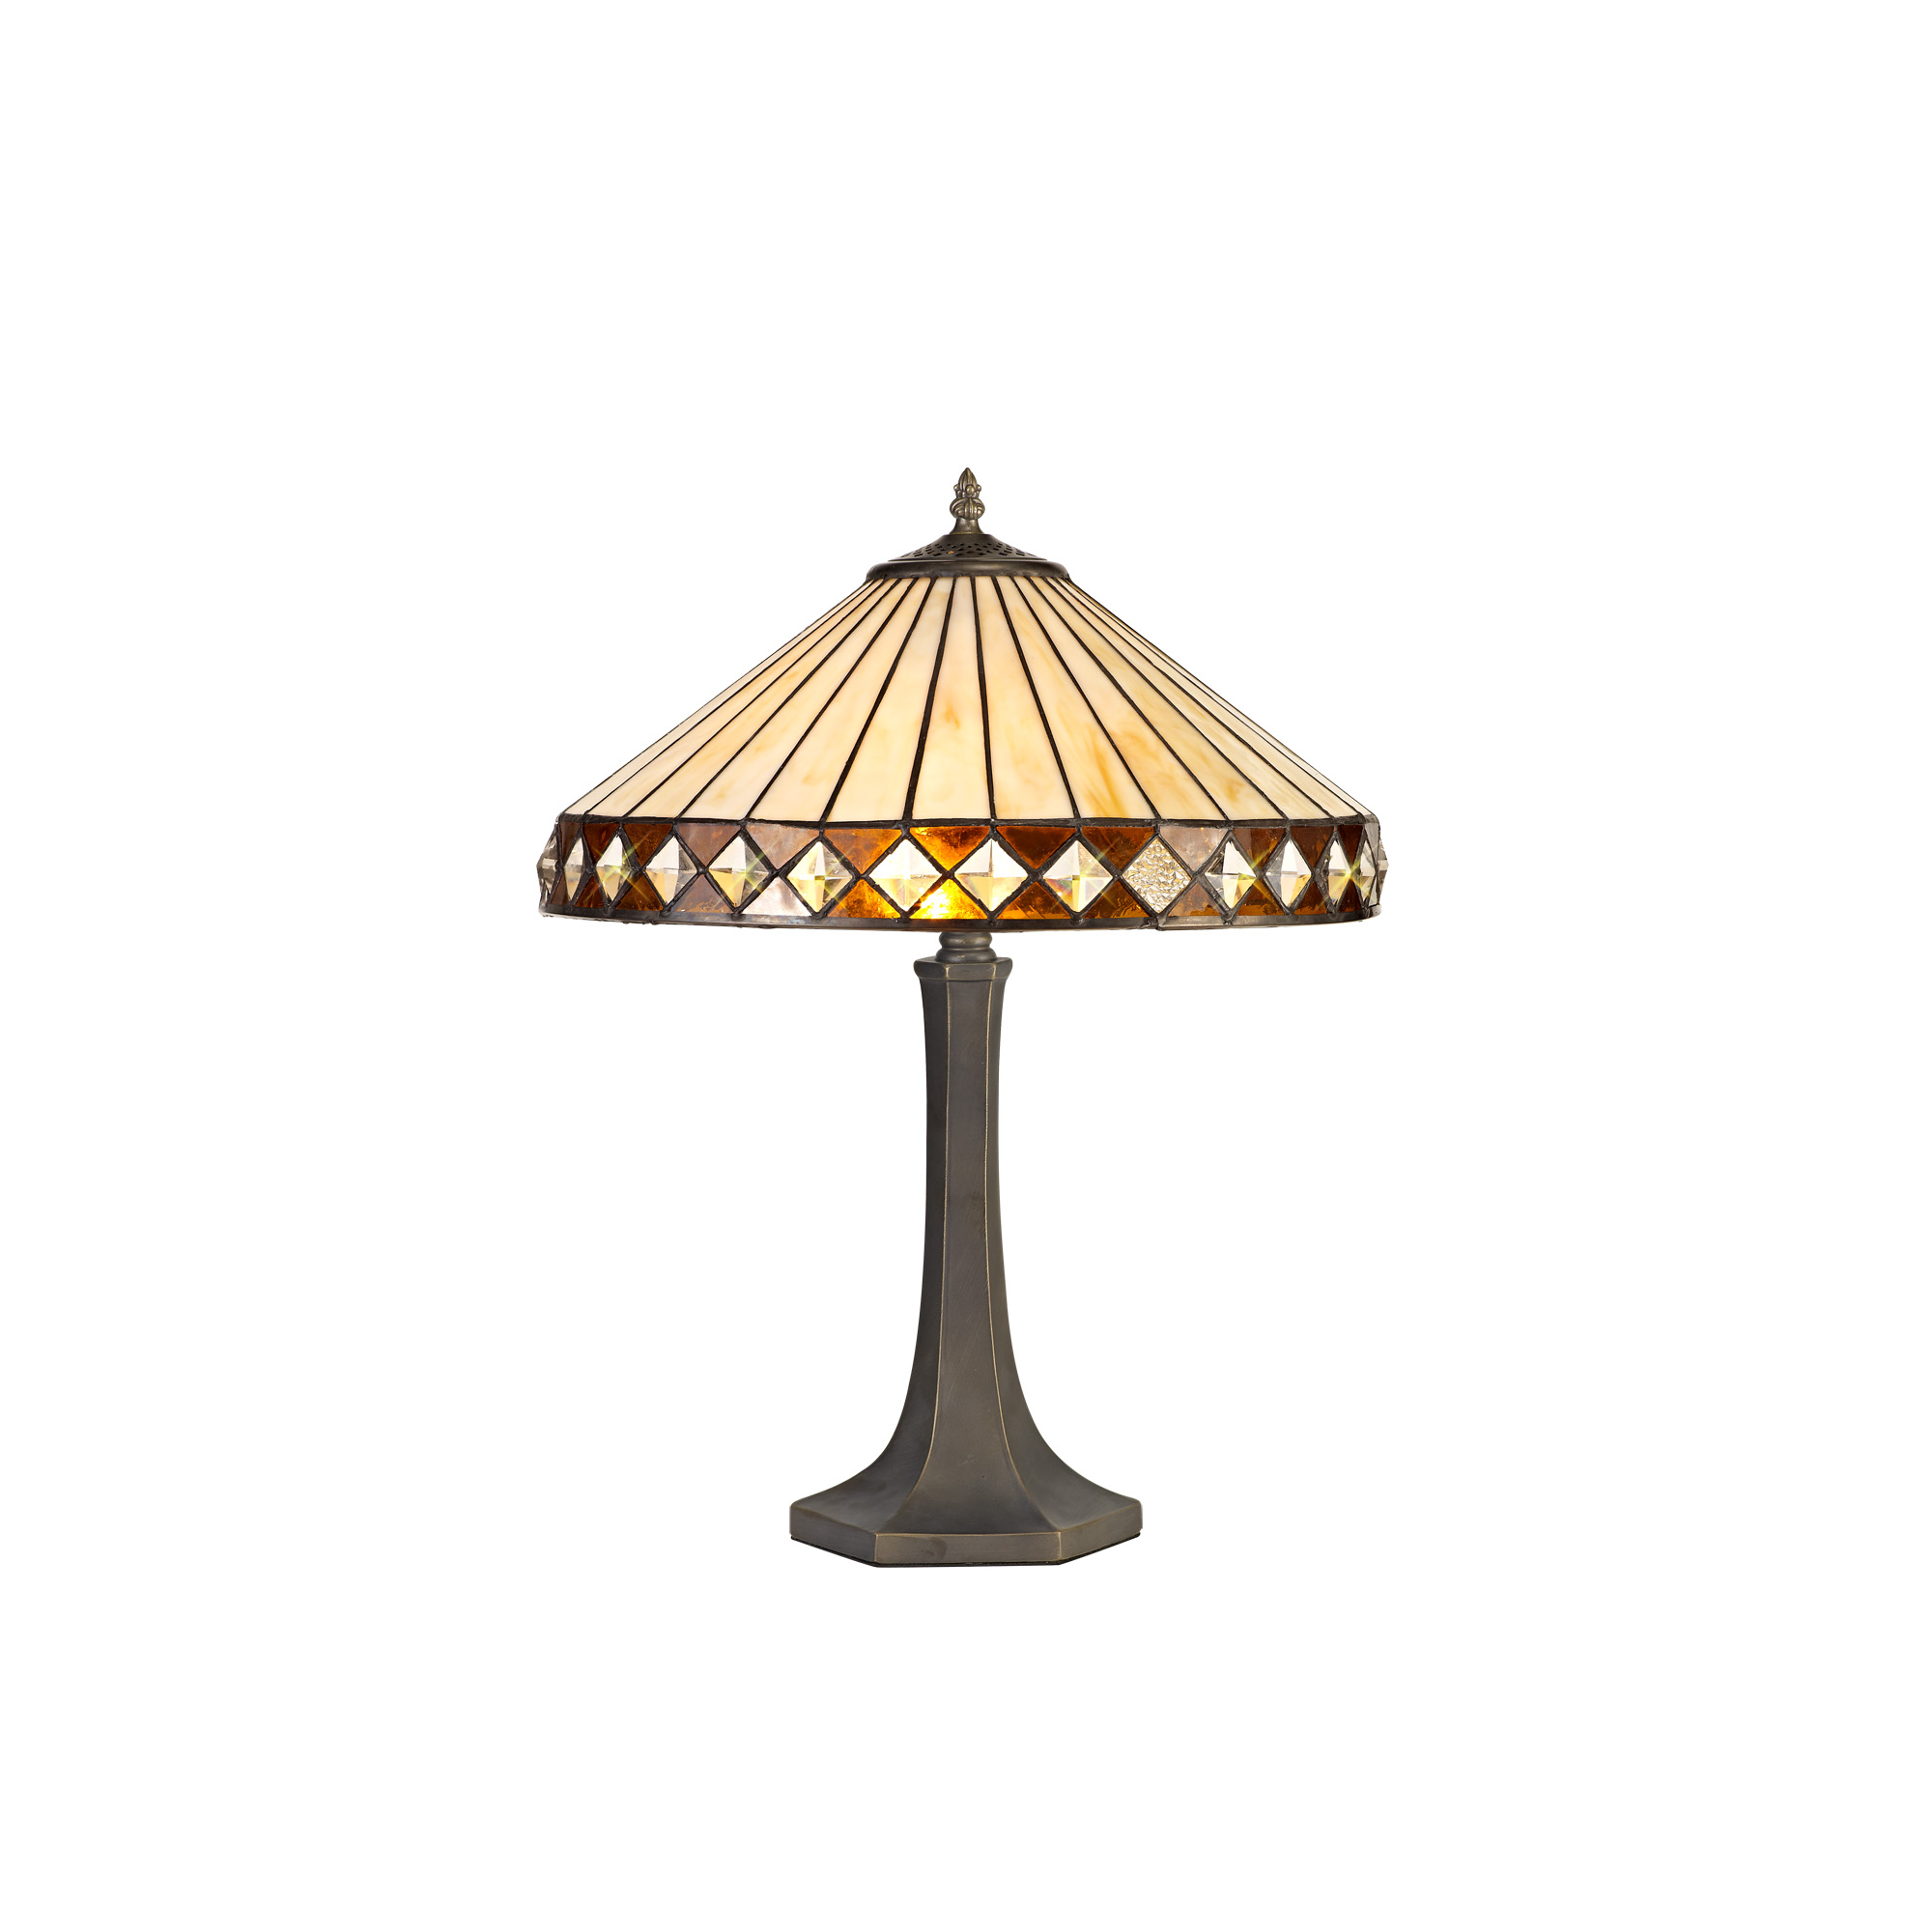 2 Light Octagonal Table Lamp E27 With 40cm Tiffany Shade, Amber/C/Crystal/Aged Antique Brass